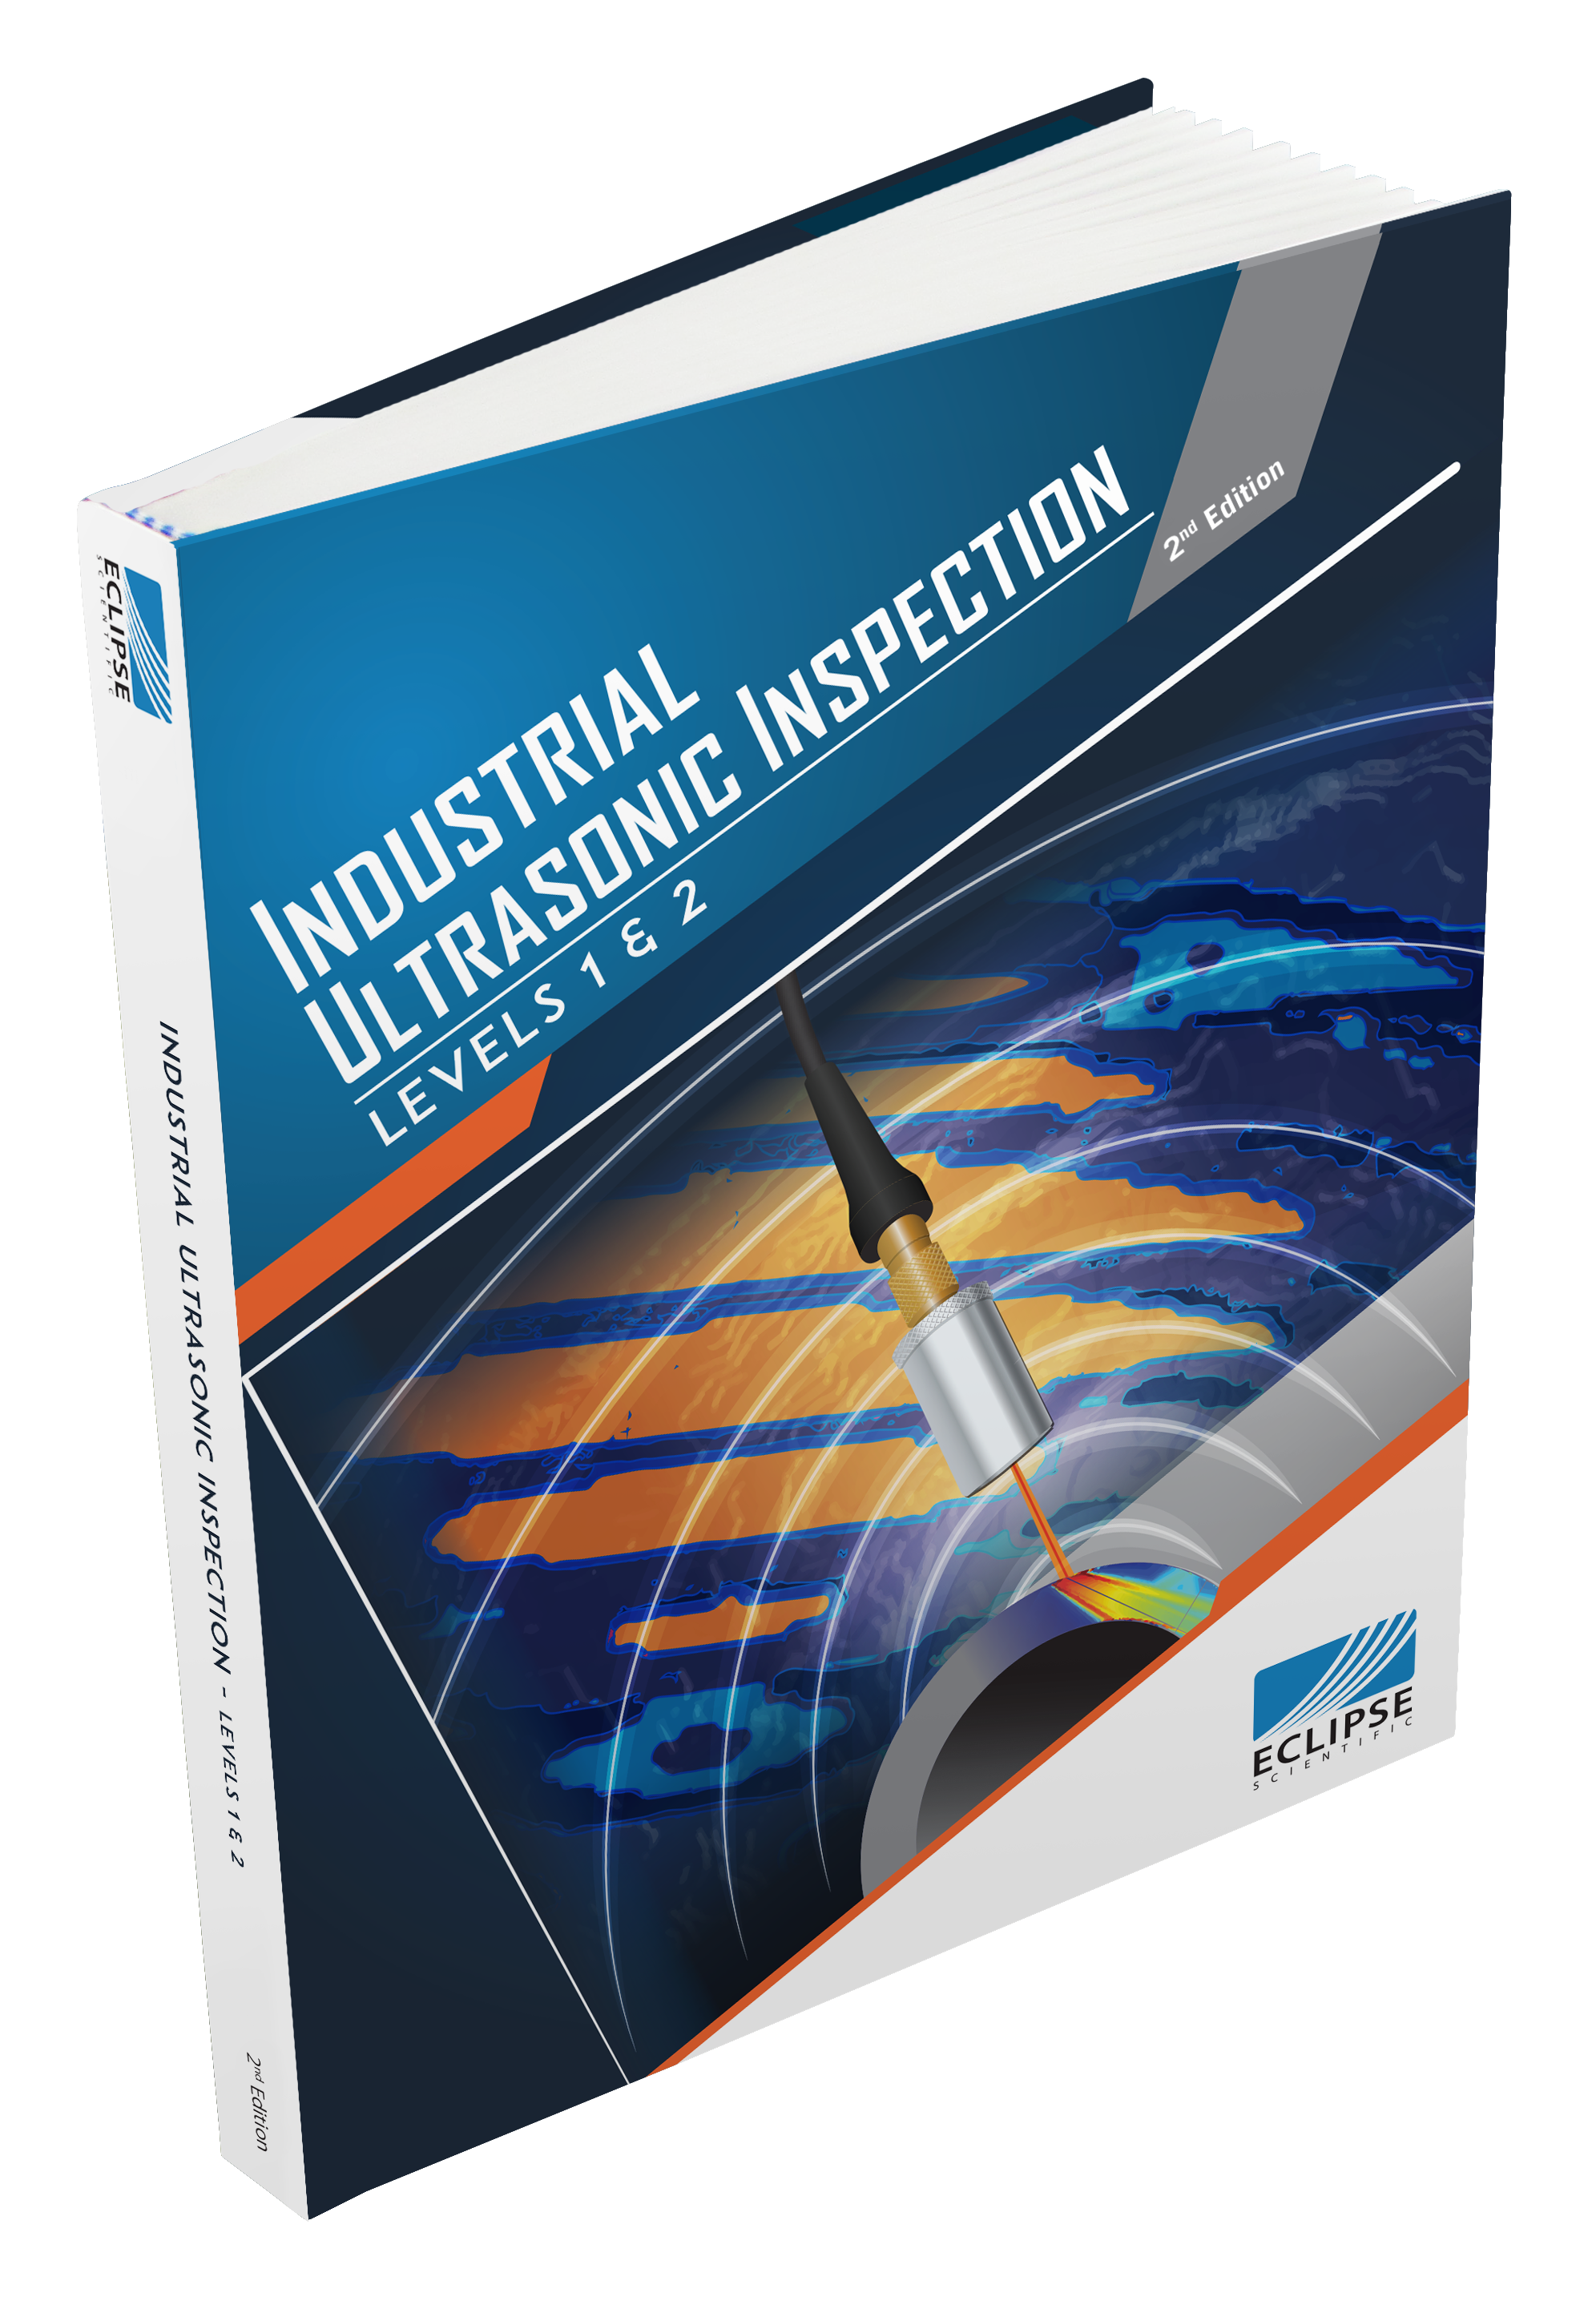 Industrial Ultrasonic Inspection Levels 1 & 2 - 1st Edition